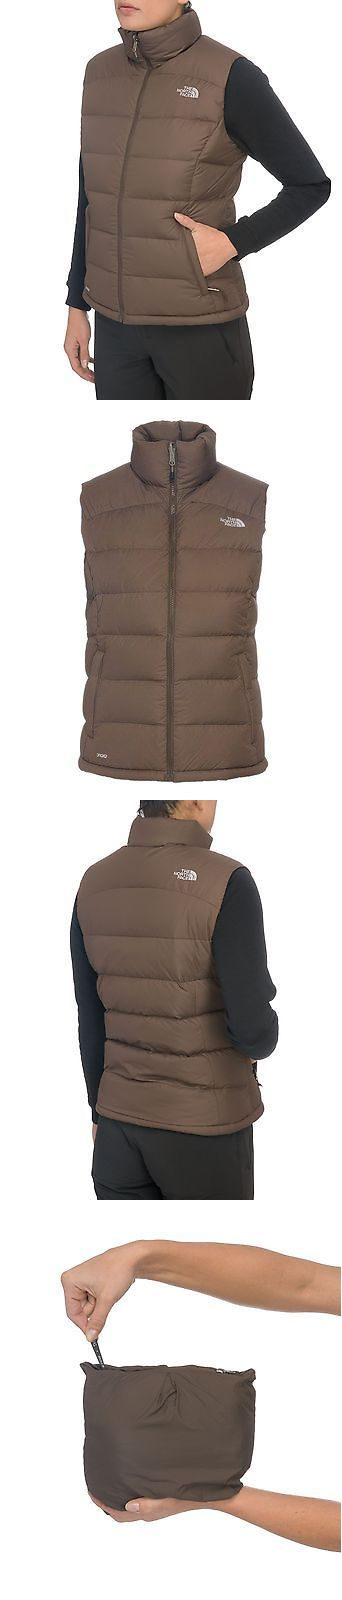 Clothing 101685: The North Face Nuptse 2 Women S Vest Xl Rrp£130 Bnwt -> BUY IT NOW ONLY: $84.99 on eBay!